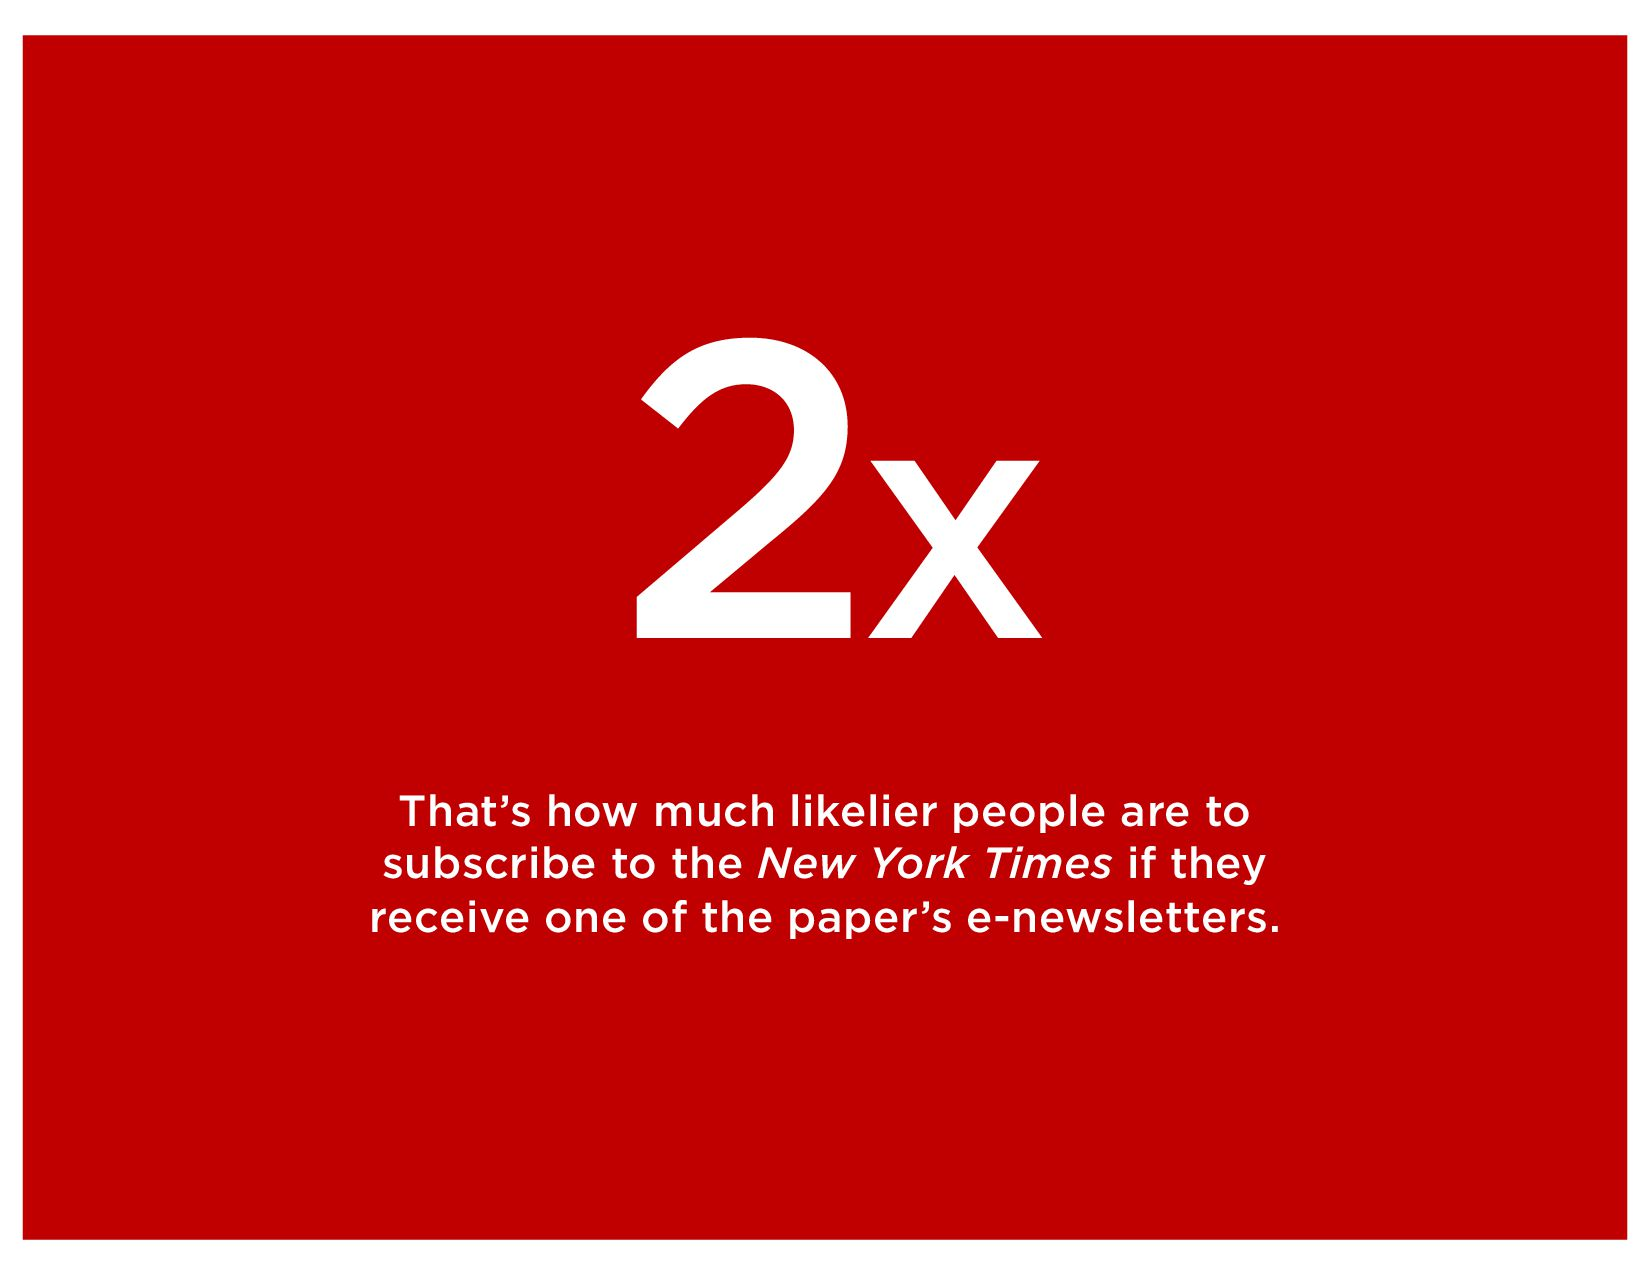 That's how many gradations of a single color Ma...